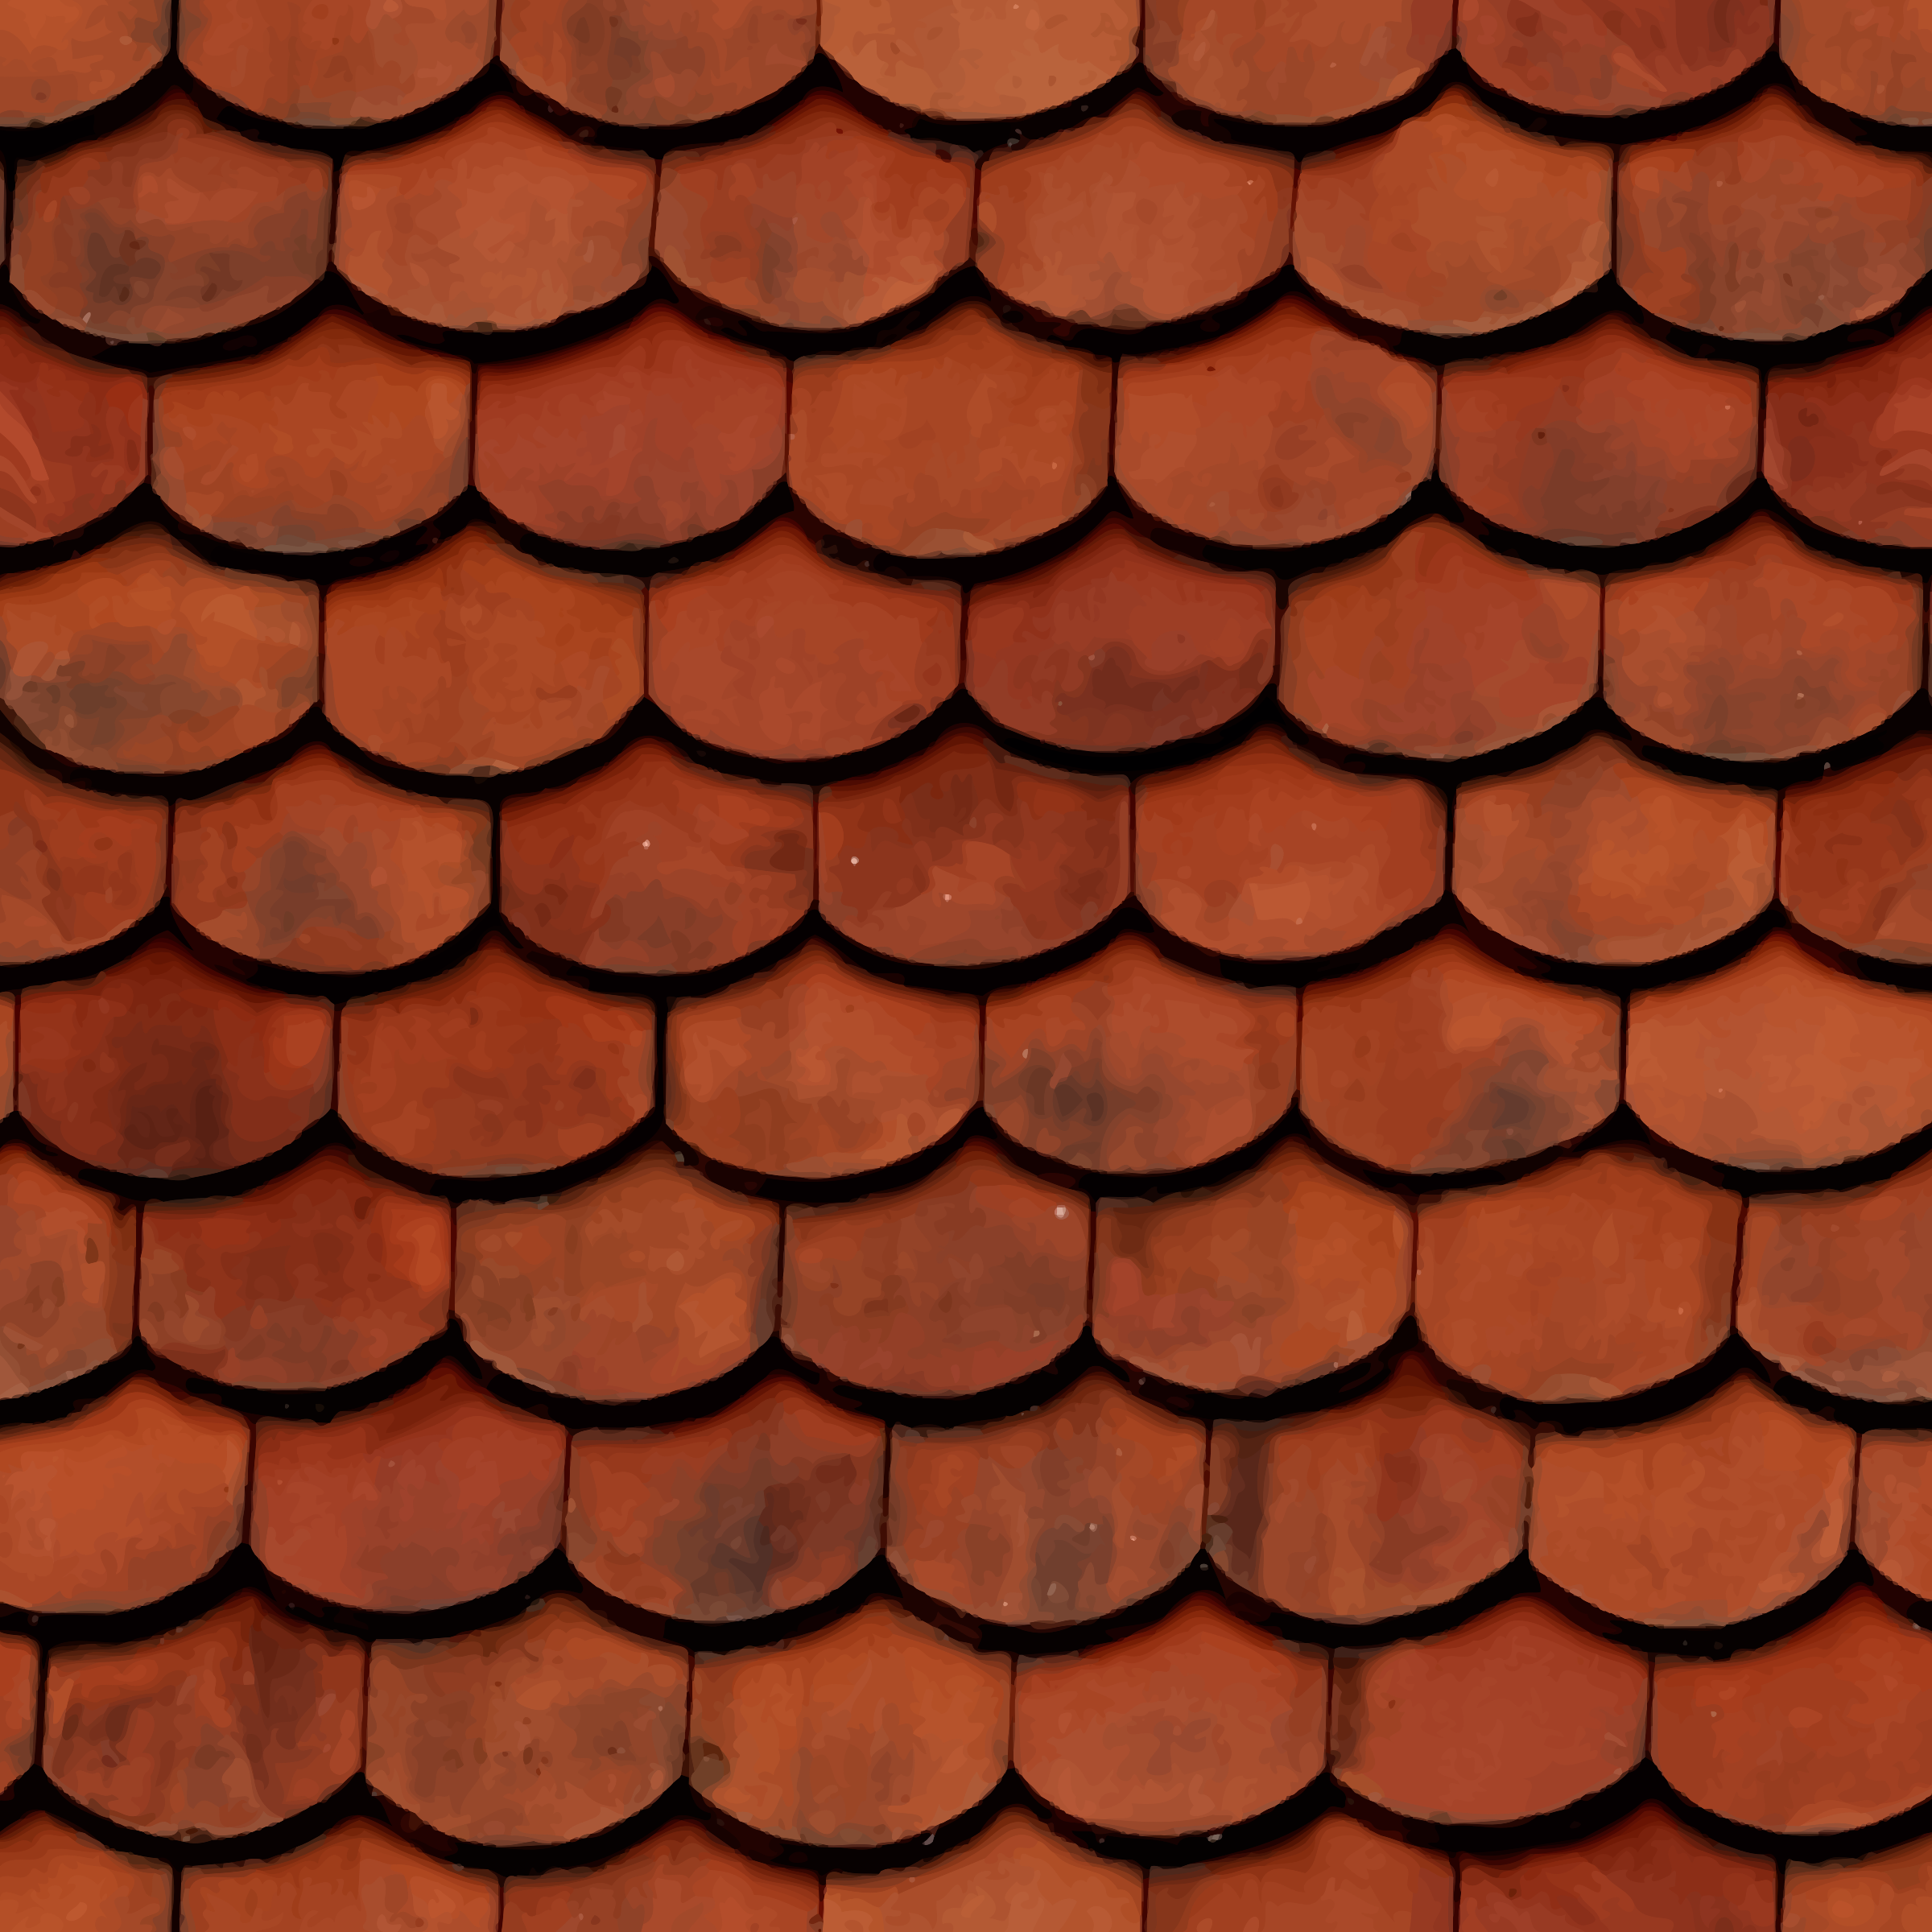 Roof tiles by Firkin